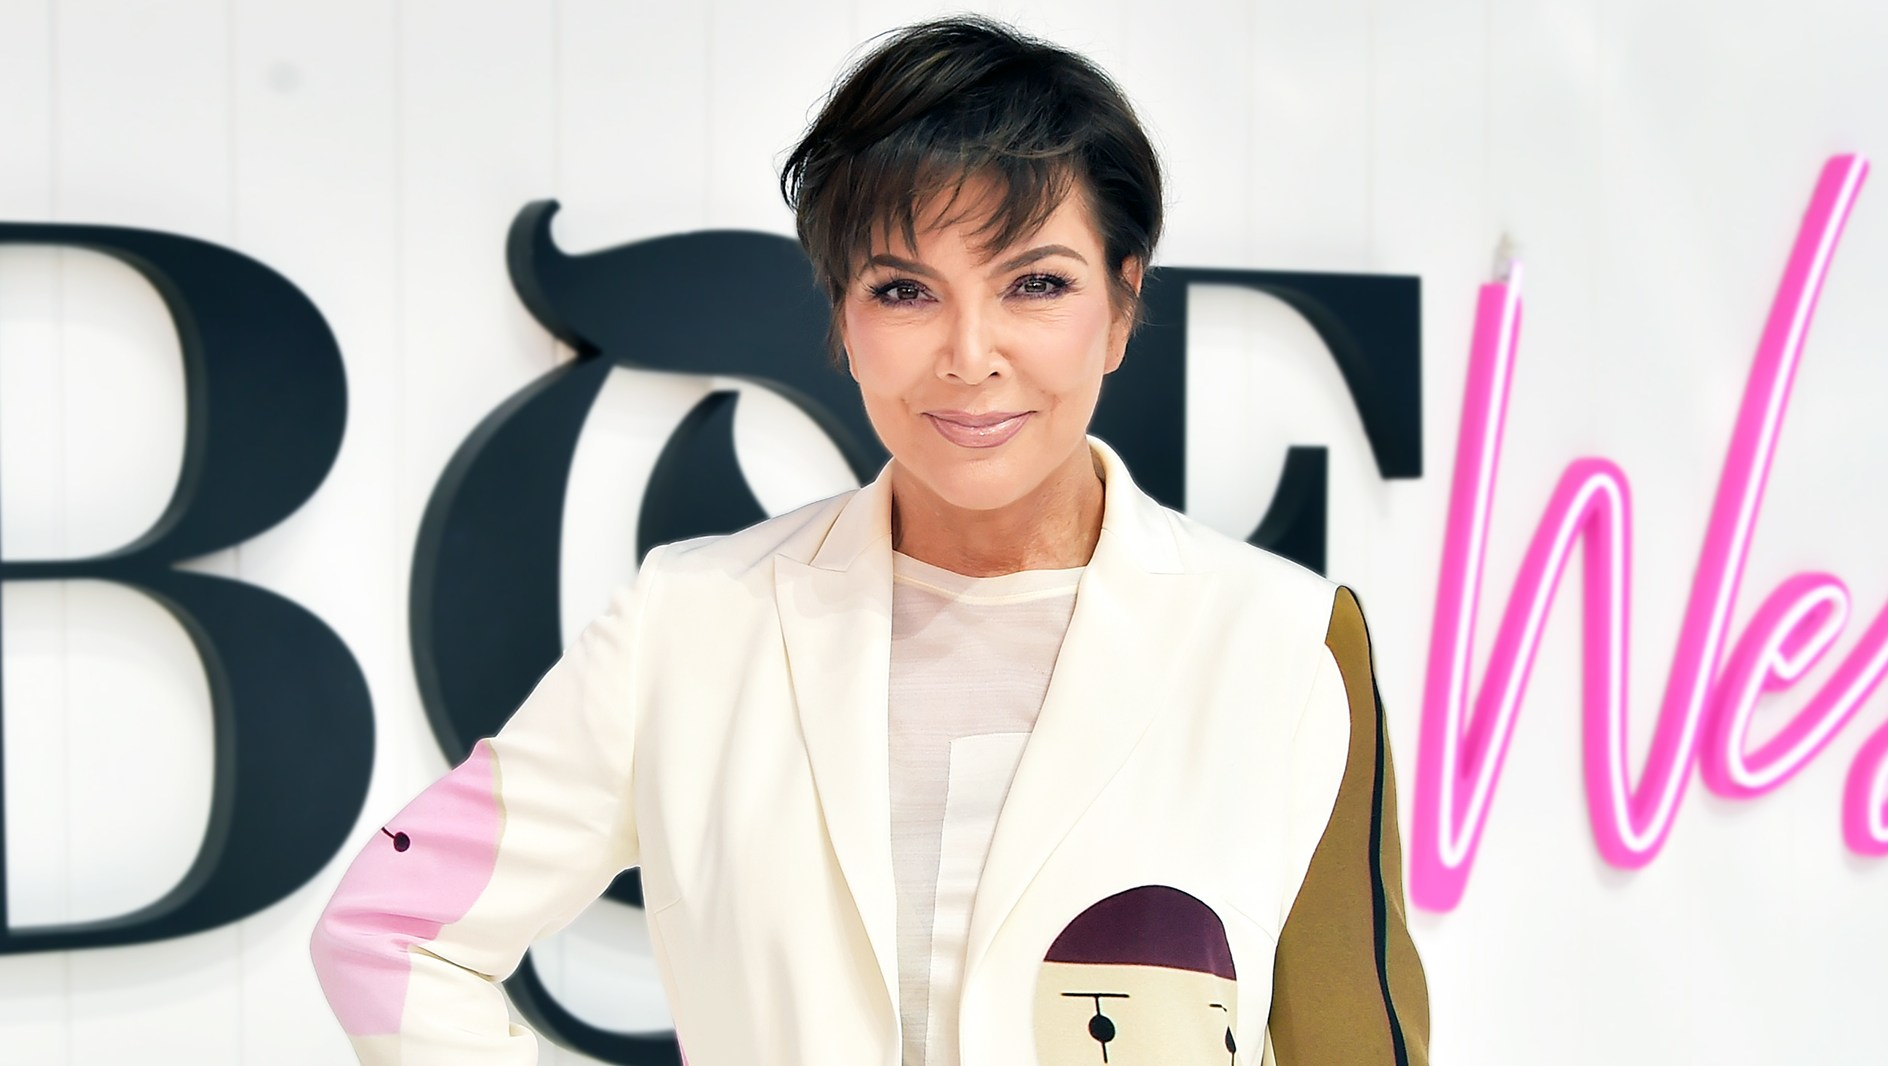 Kris Jenner's Best Proud Grandma Moments: See the 'Grandmomager' in Action